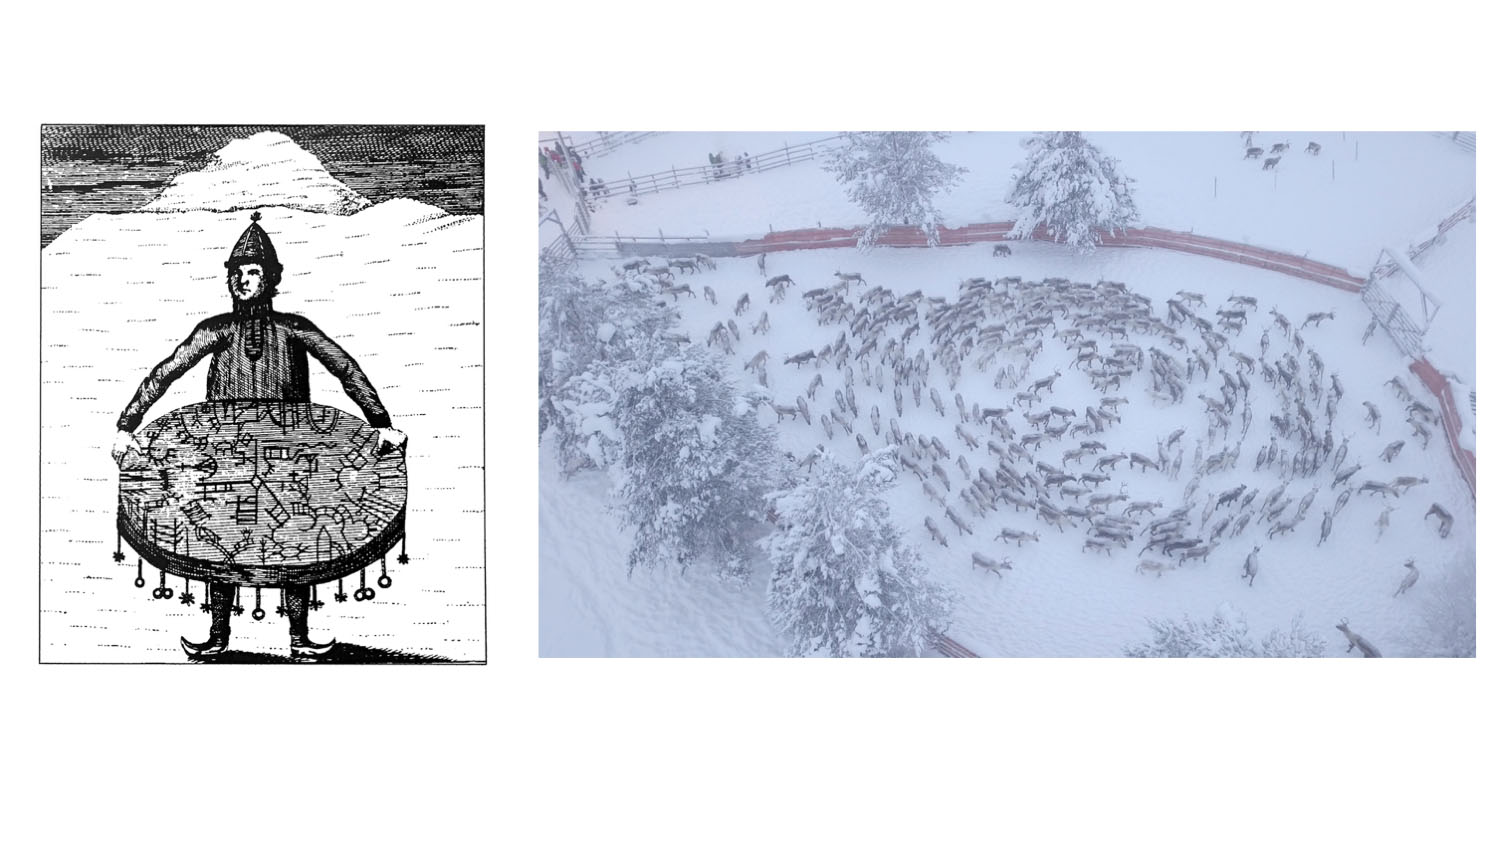 Sámi shaman with a drum. Drawing by Knud Leem, 1767; and Litte ja Goabddá [Drones and Drums], 2018